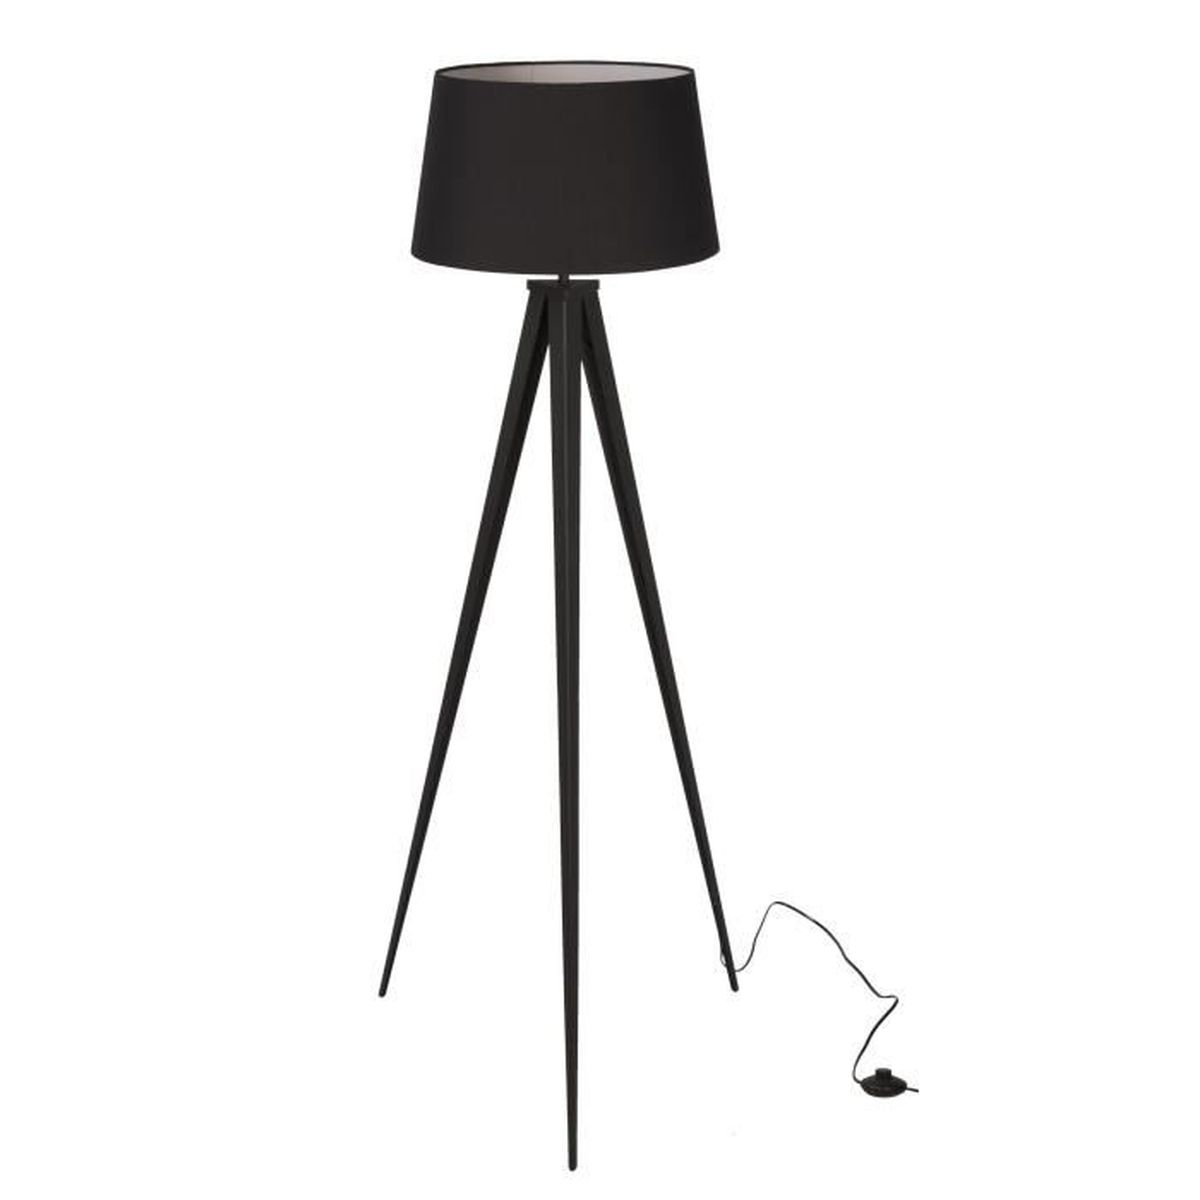 trident lampadaire tr pied largeur 45 x h154 achat vente trident lampadaire tr pied cdiscount. Black Bedroom Furniture Sets. Home Design Ideas